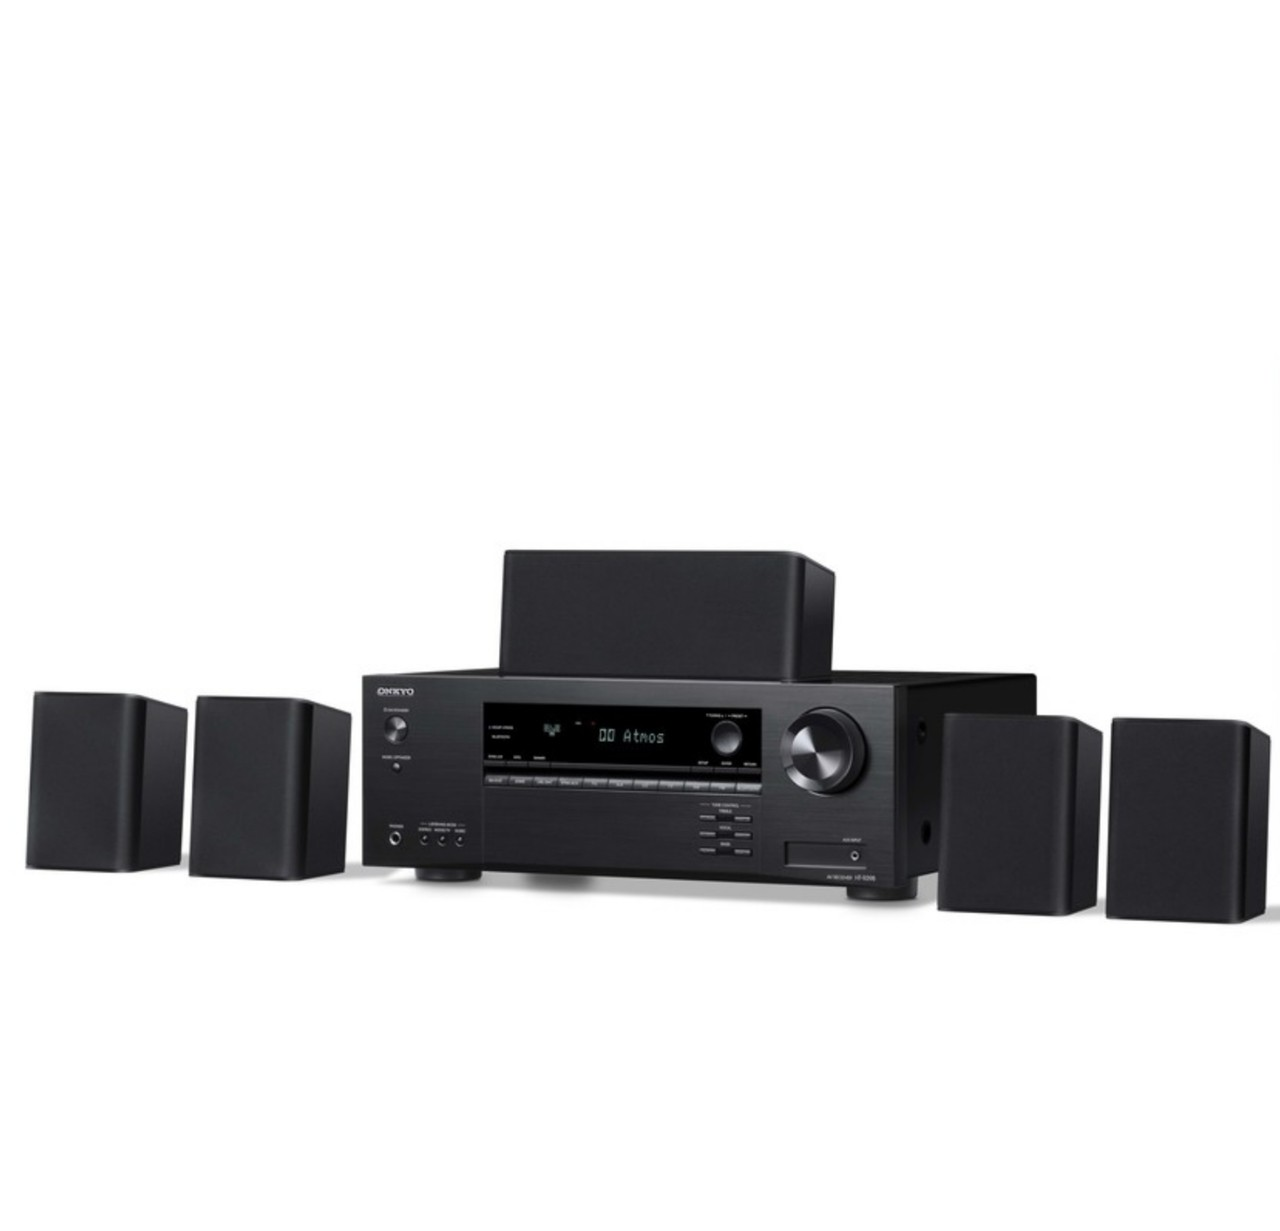 Home Theater Onkyo Ht-s3910 kit 5.0 sem SubWoofer Dolby Atmos E Dts 80w Por Canal